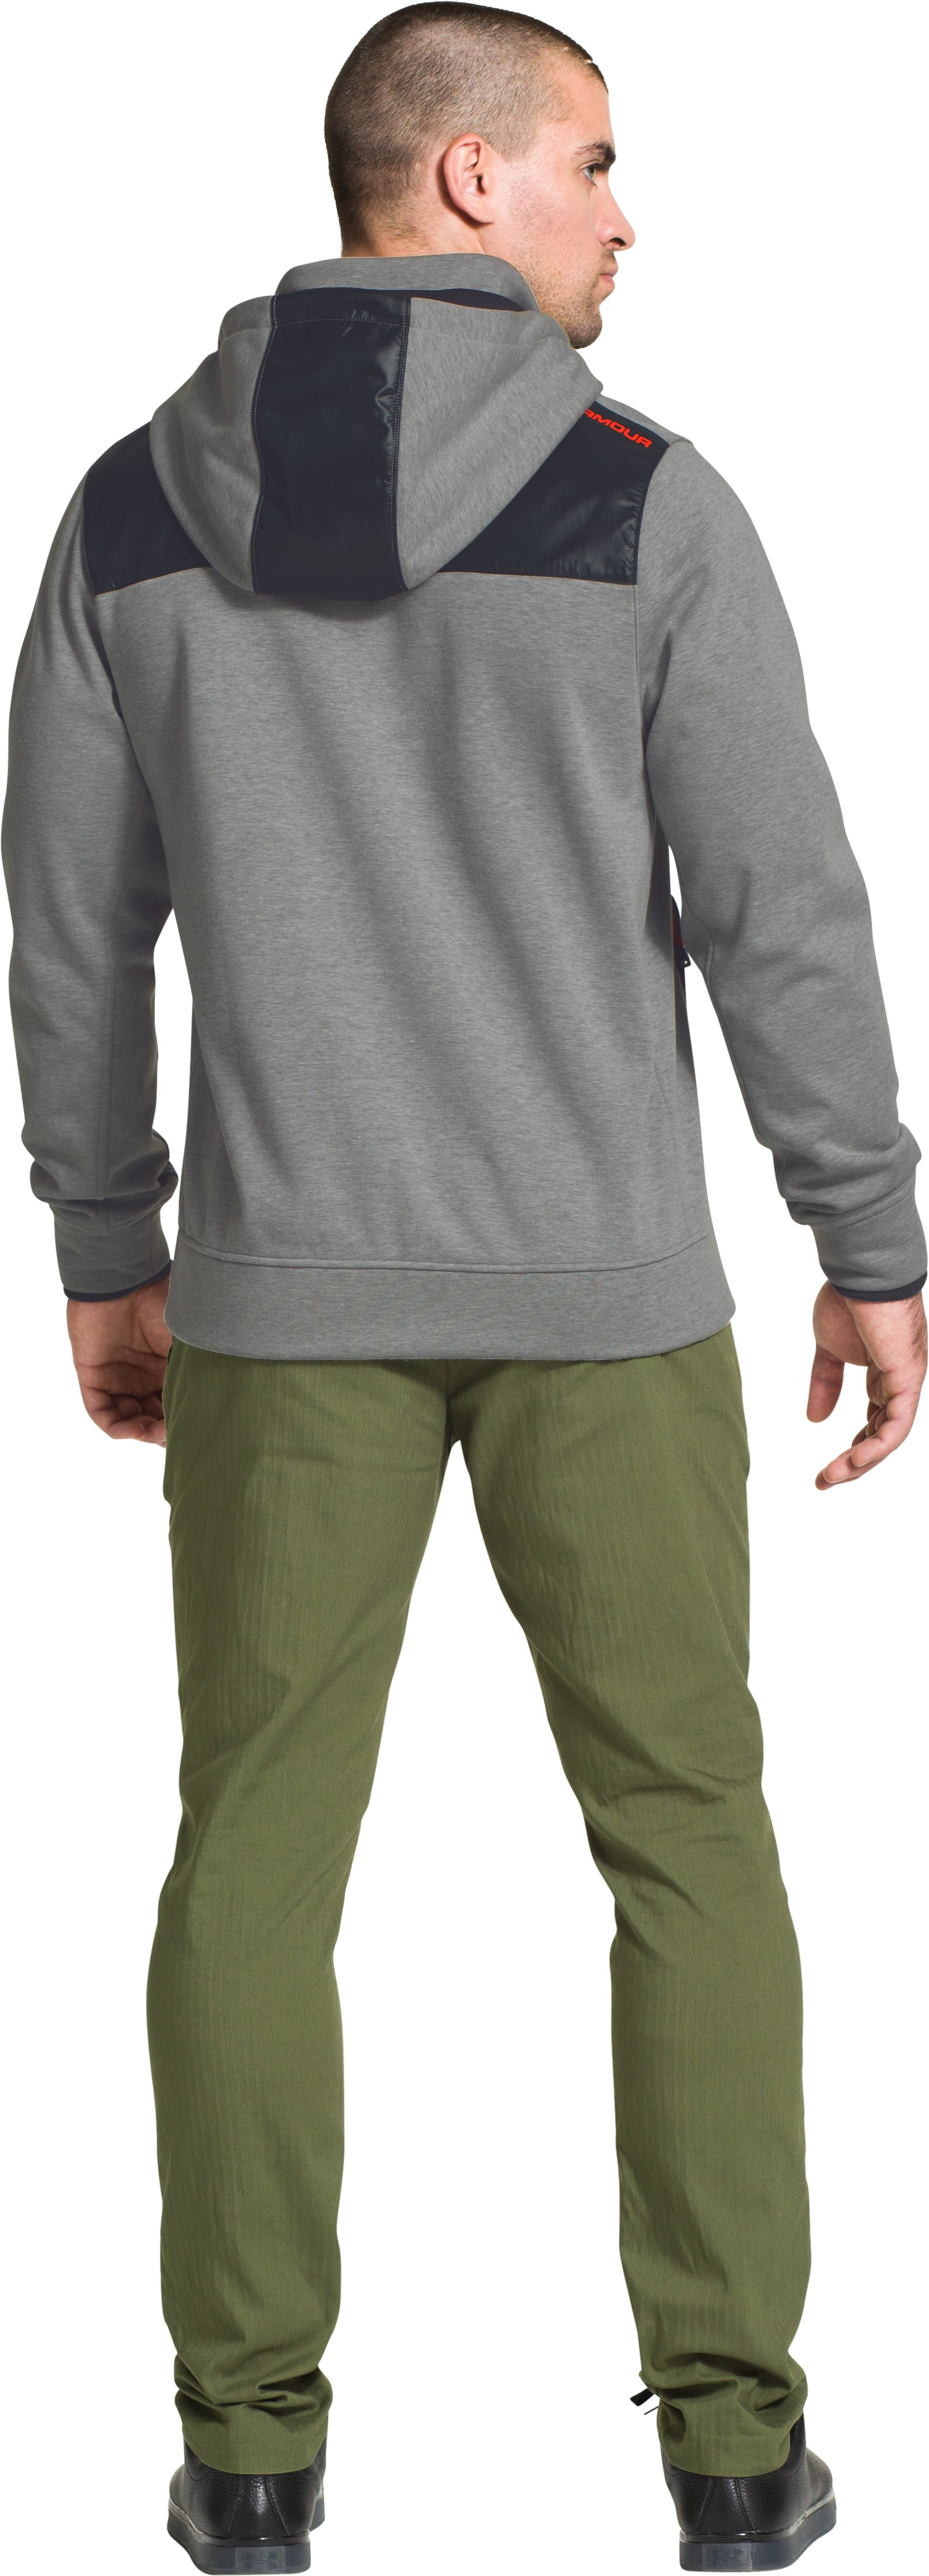 Men's UA Storm Element Breaker Hoodie, True Gray Heather, Back